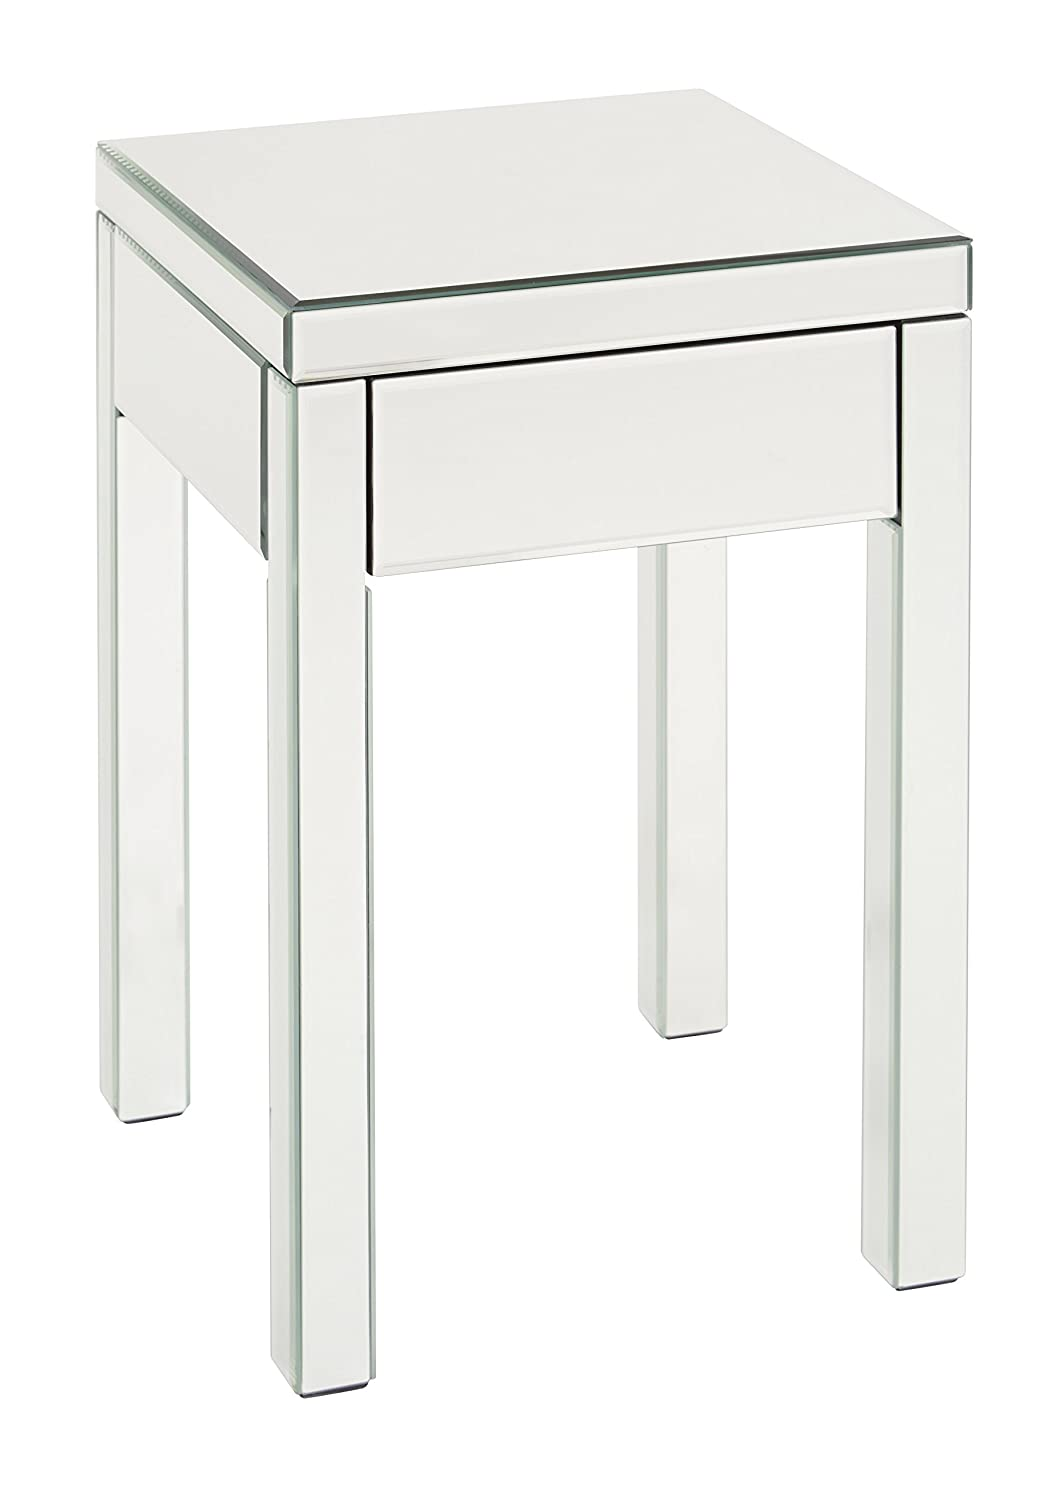 AVE SIX Reflections End Table with Drawer, Silver Mirrored Finish REF09-SLV